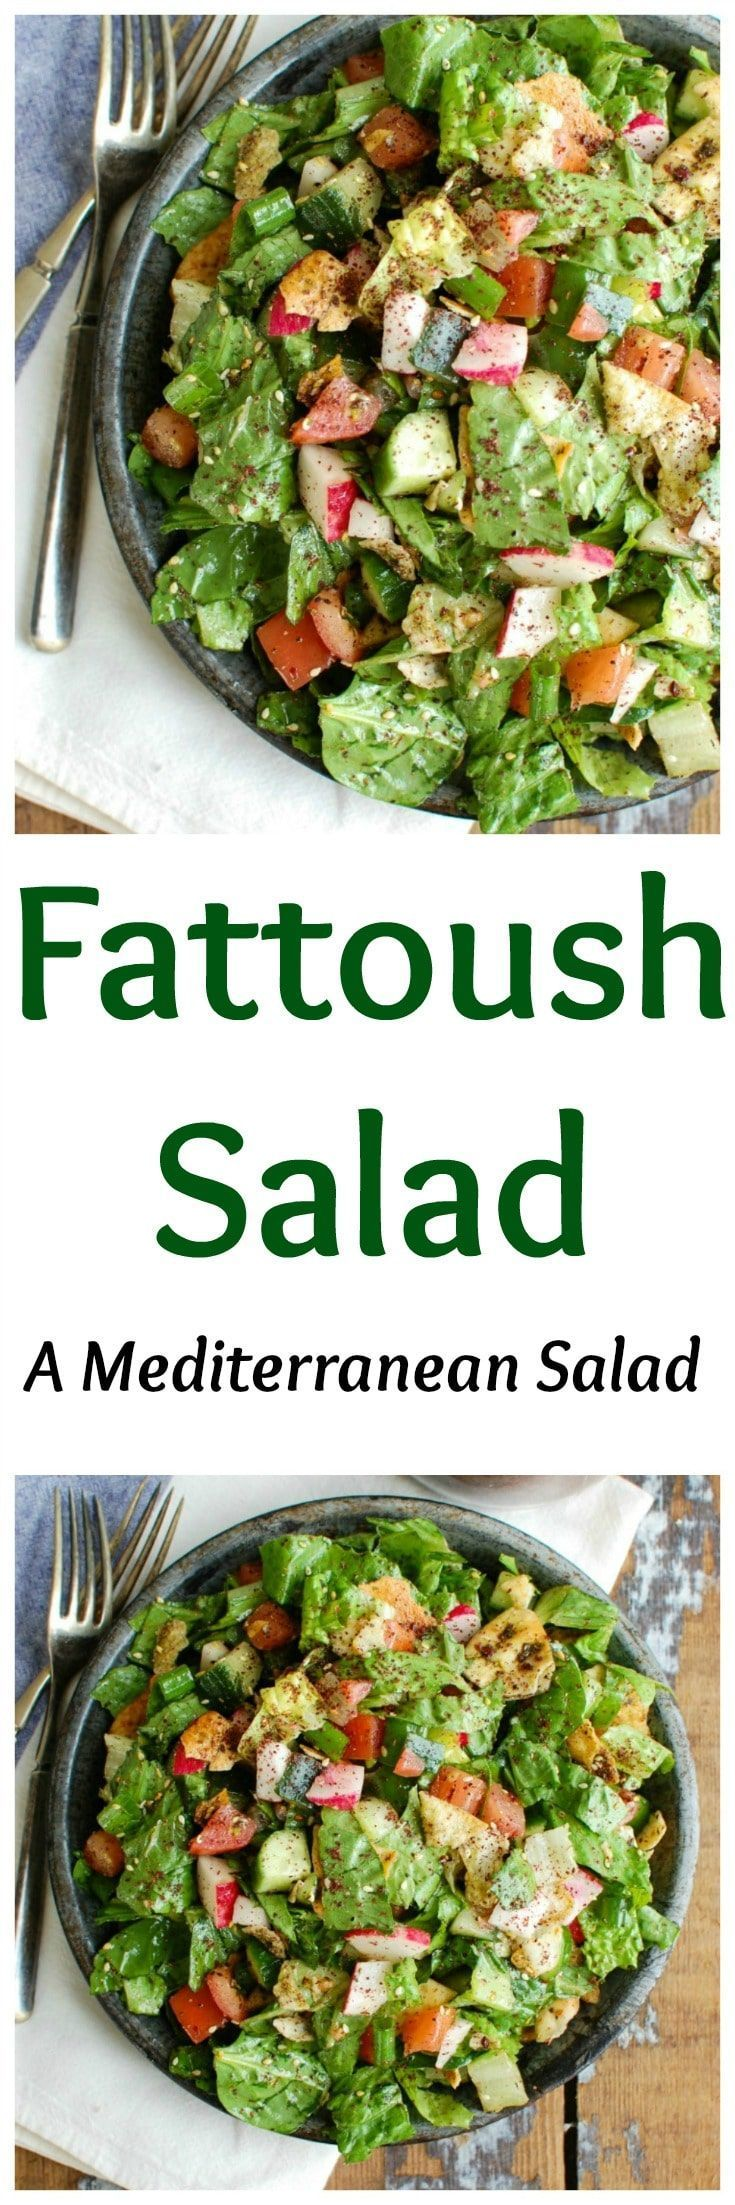 A healthy Middle Eastern Salad with a light, lemony vinaigrette dressing. This salad mixes crisp romaine, fresh vegetables, pita chips and a light lemony sumac dressing and is great with fresh farmers market vegetables. // A Cedar Spoon